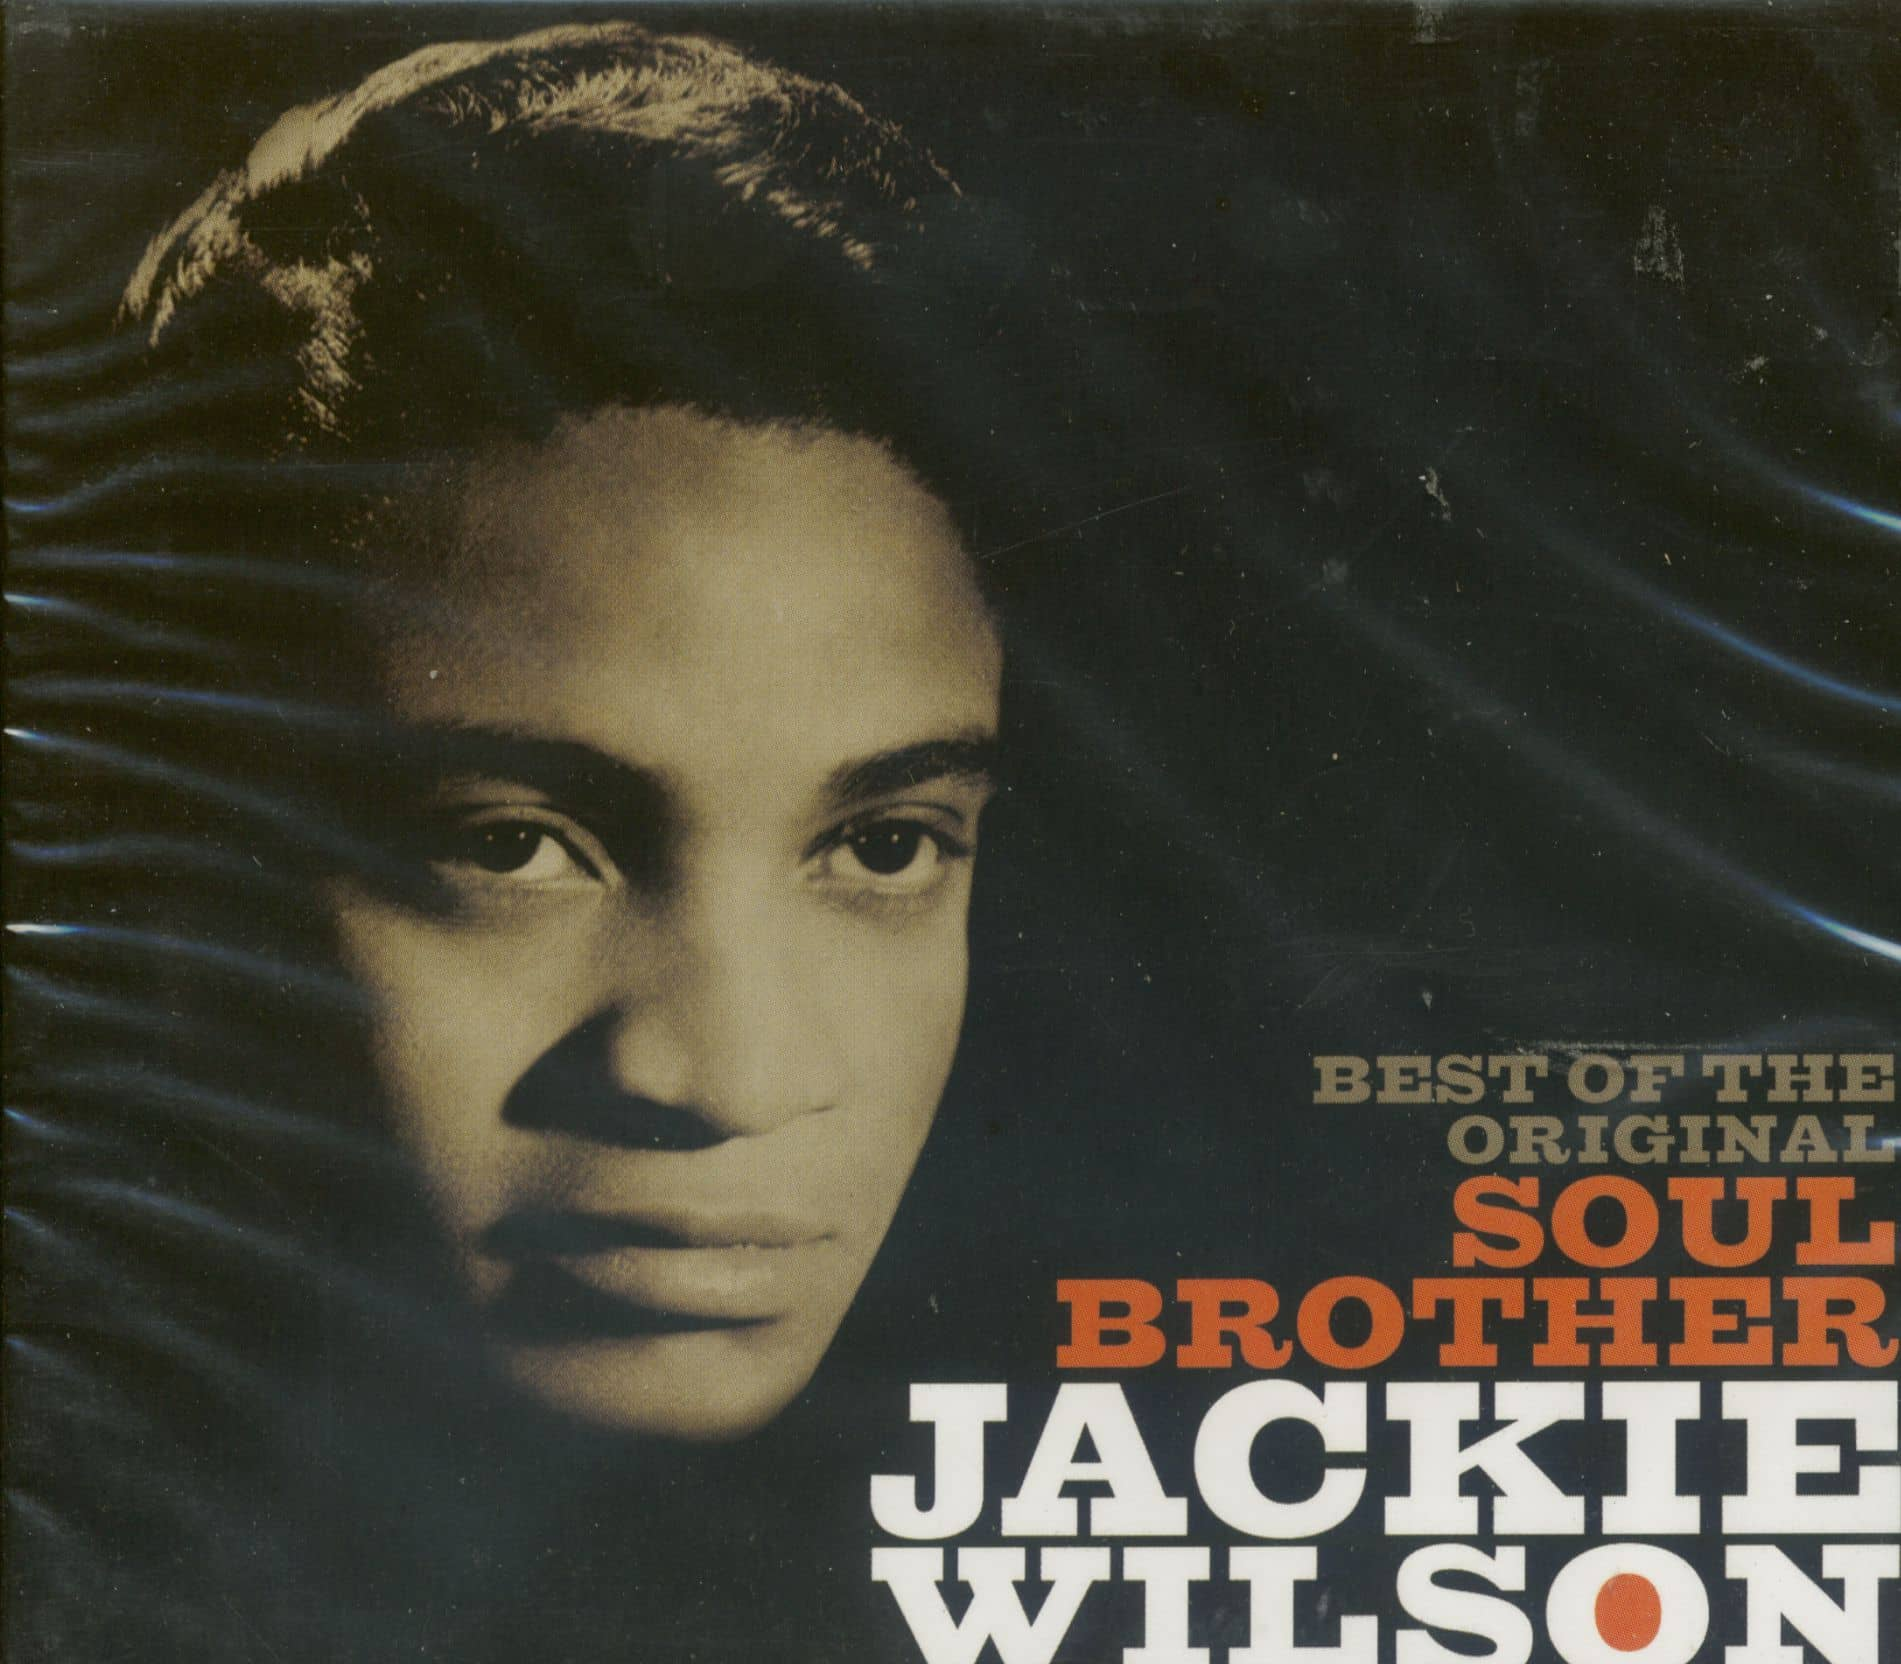 Jackie Wilson CD: Best Of The Original Soul Brother (2-CD) - Bear Family Records